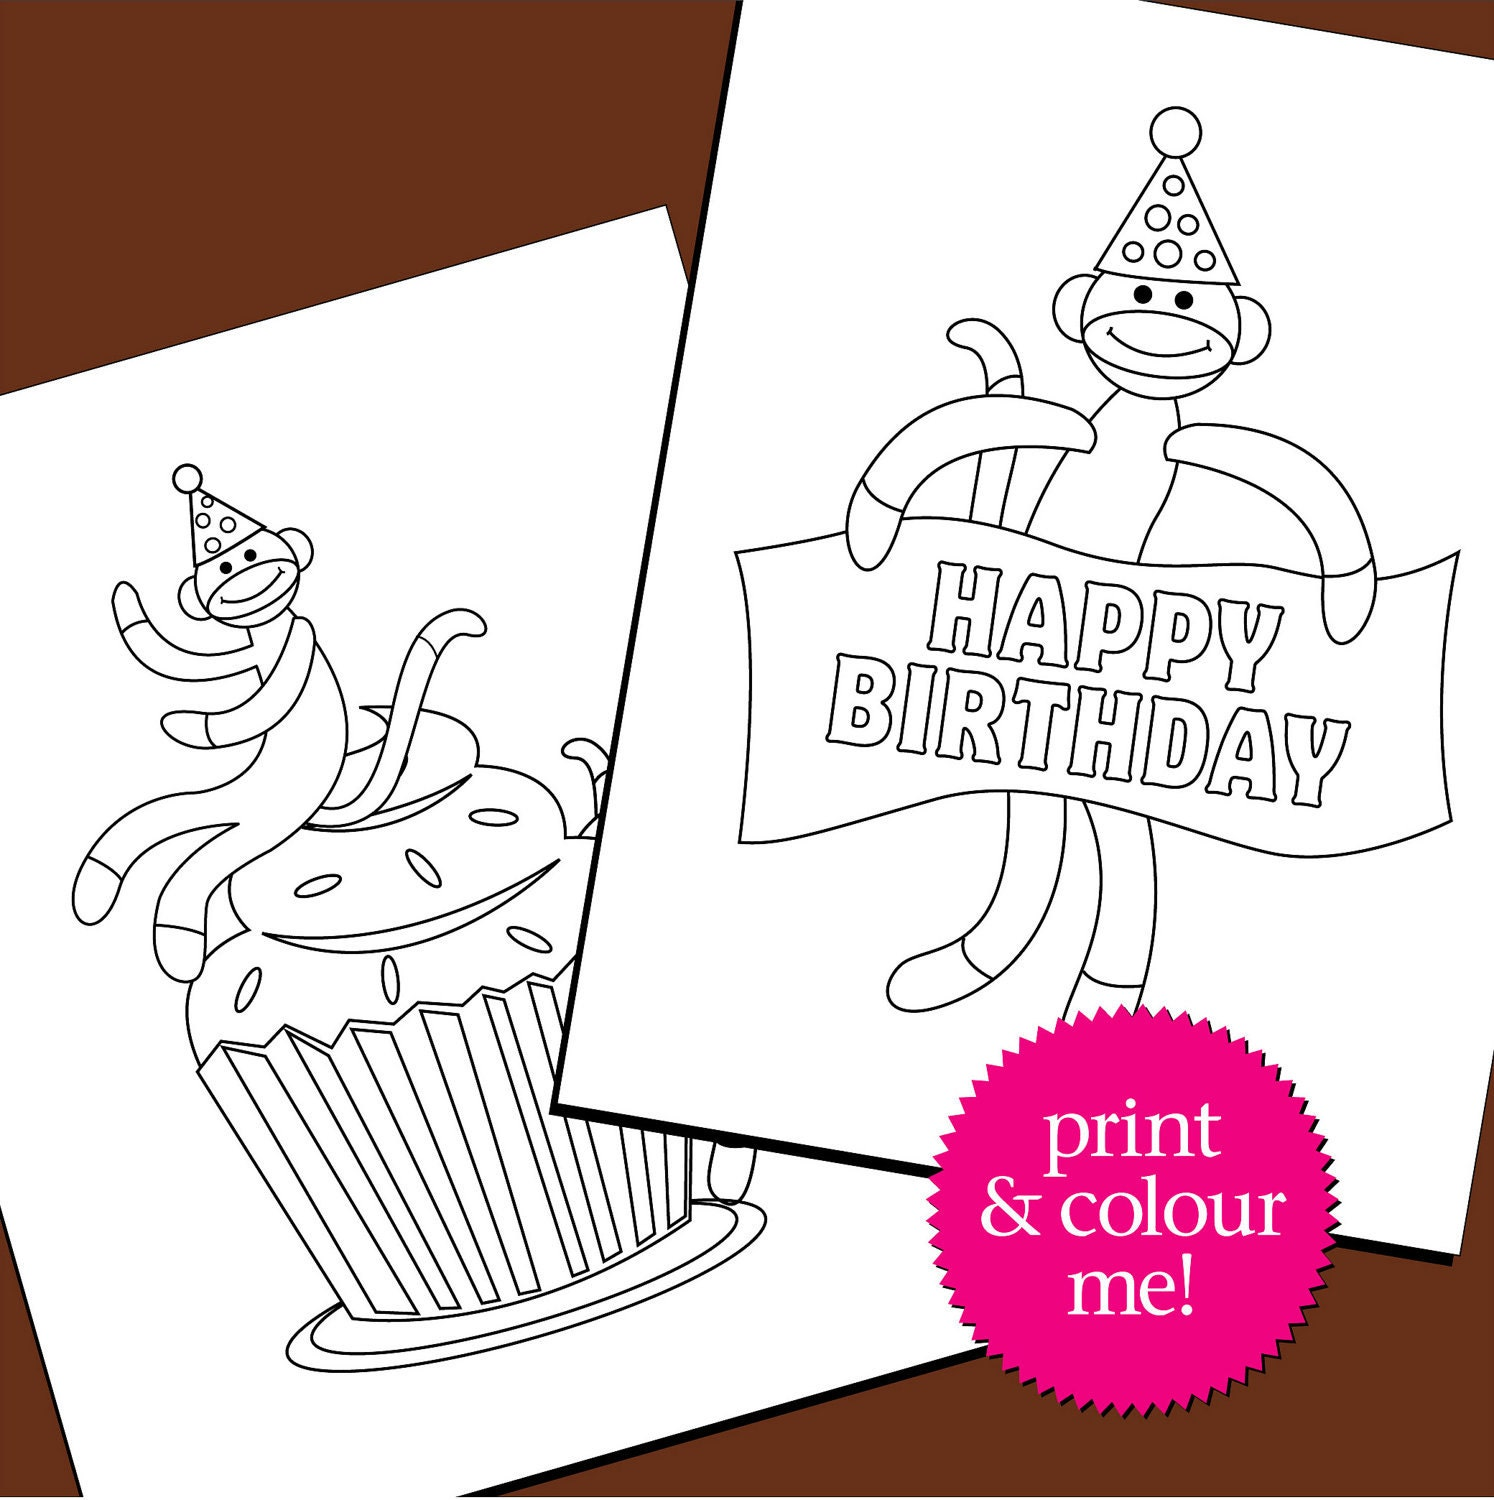 sock monkey coloring page - colouring pages birthday sock monkey birthday coloring